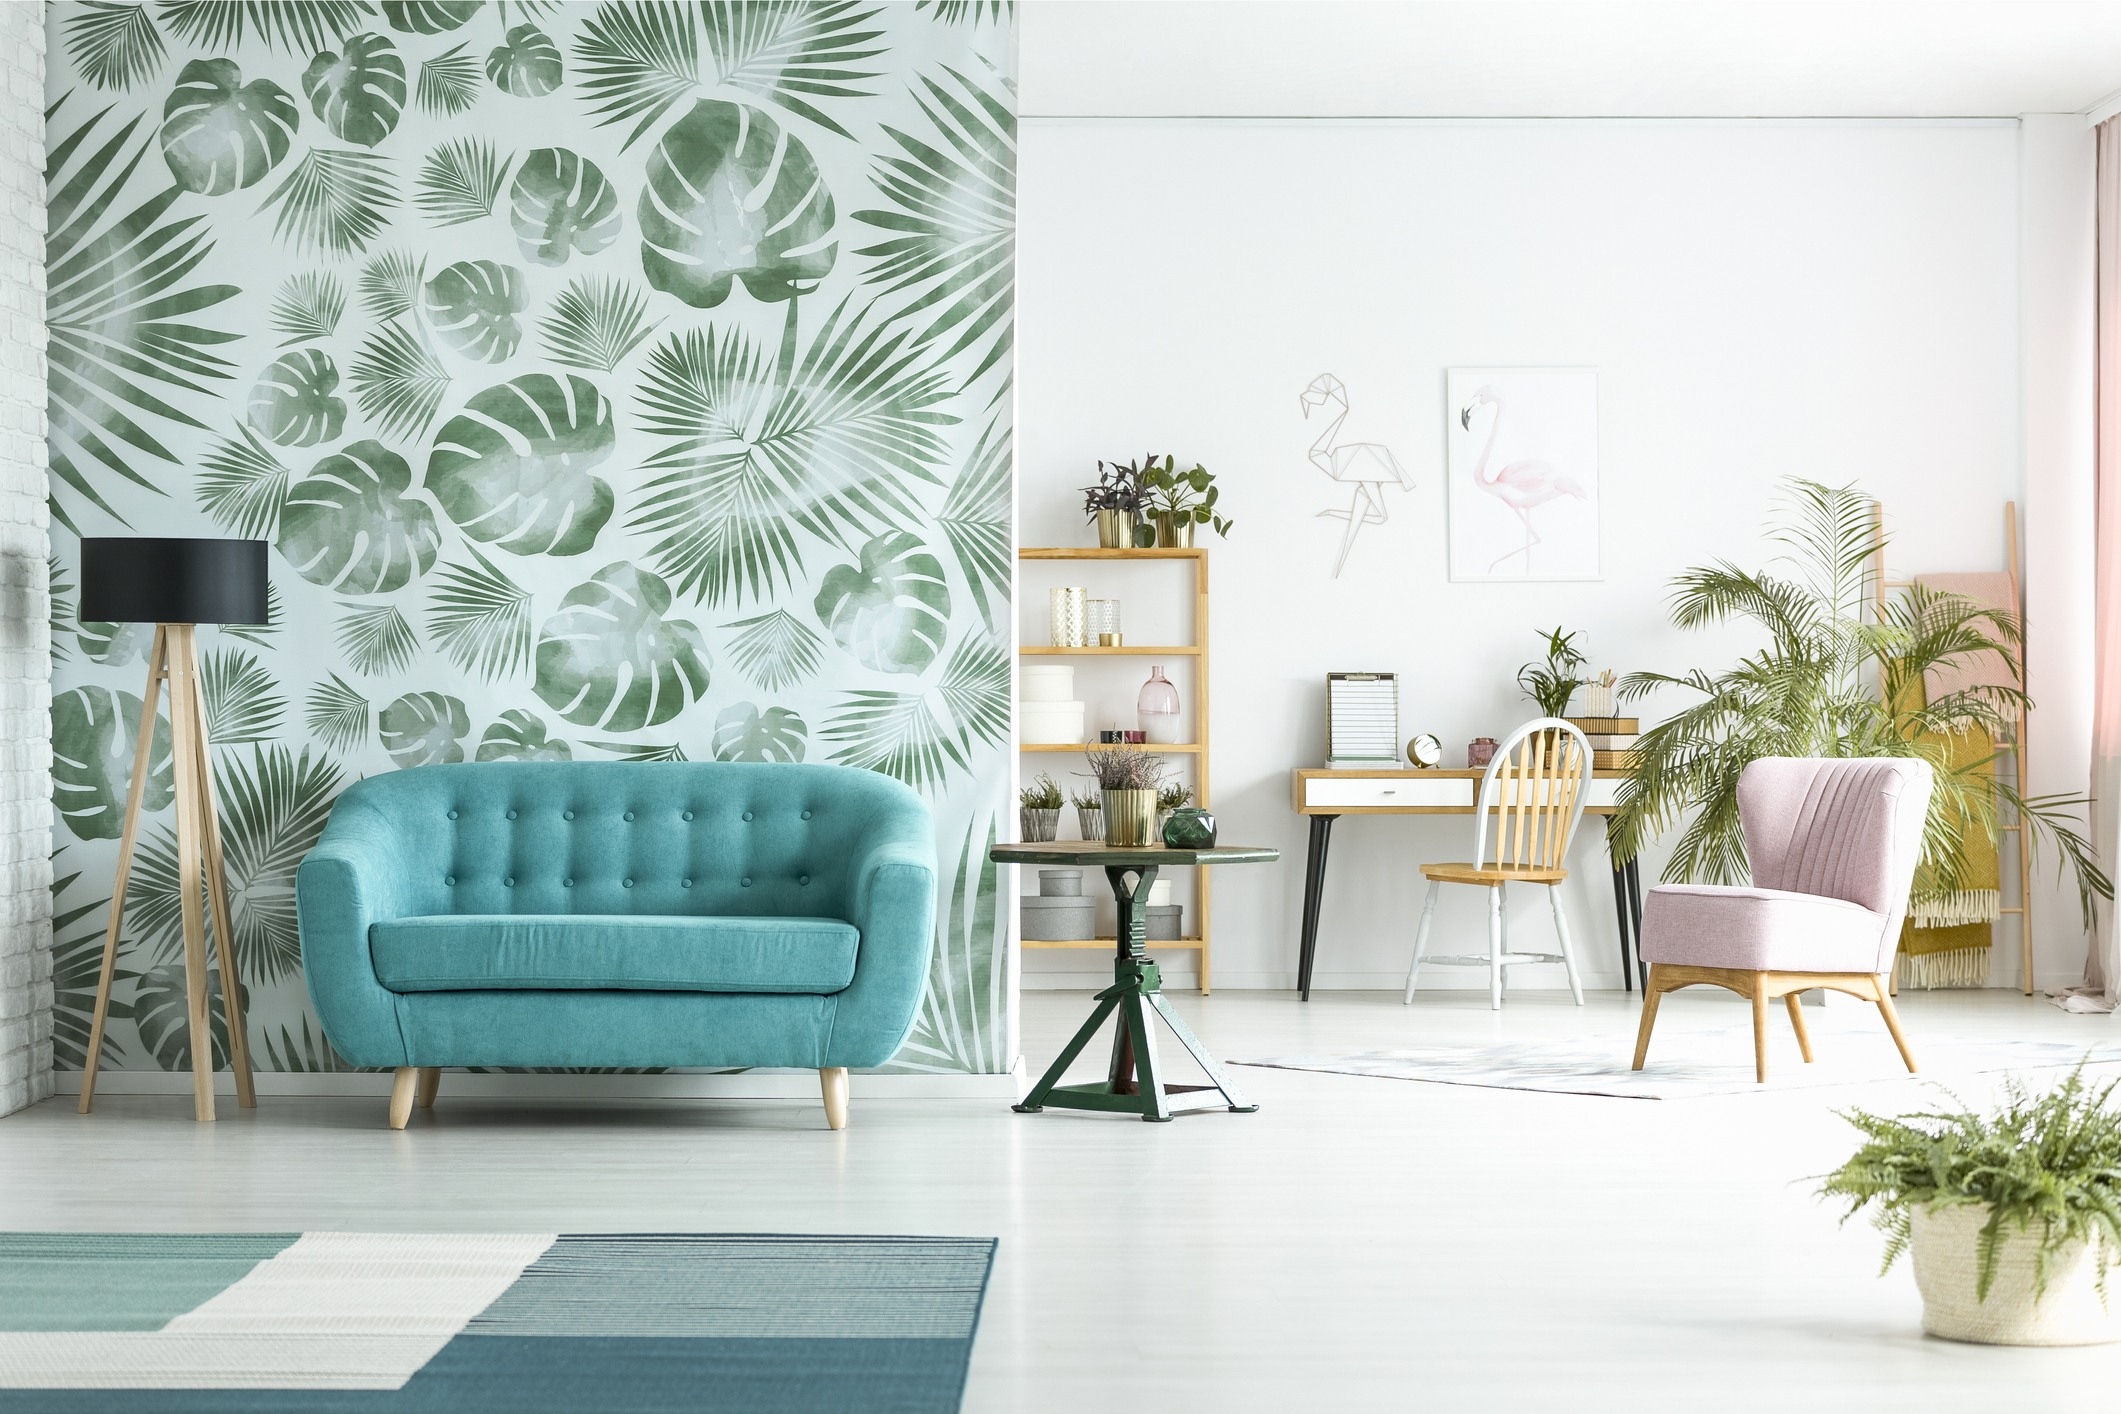 The 15 Most Overused Home Decorating Trends You Won't See ...